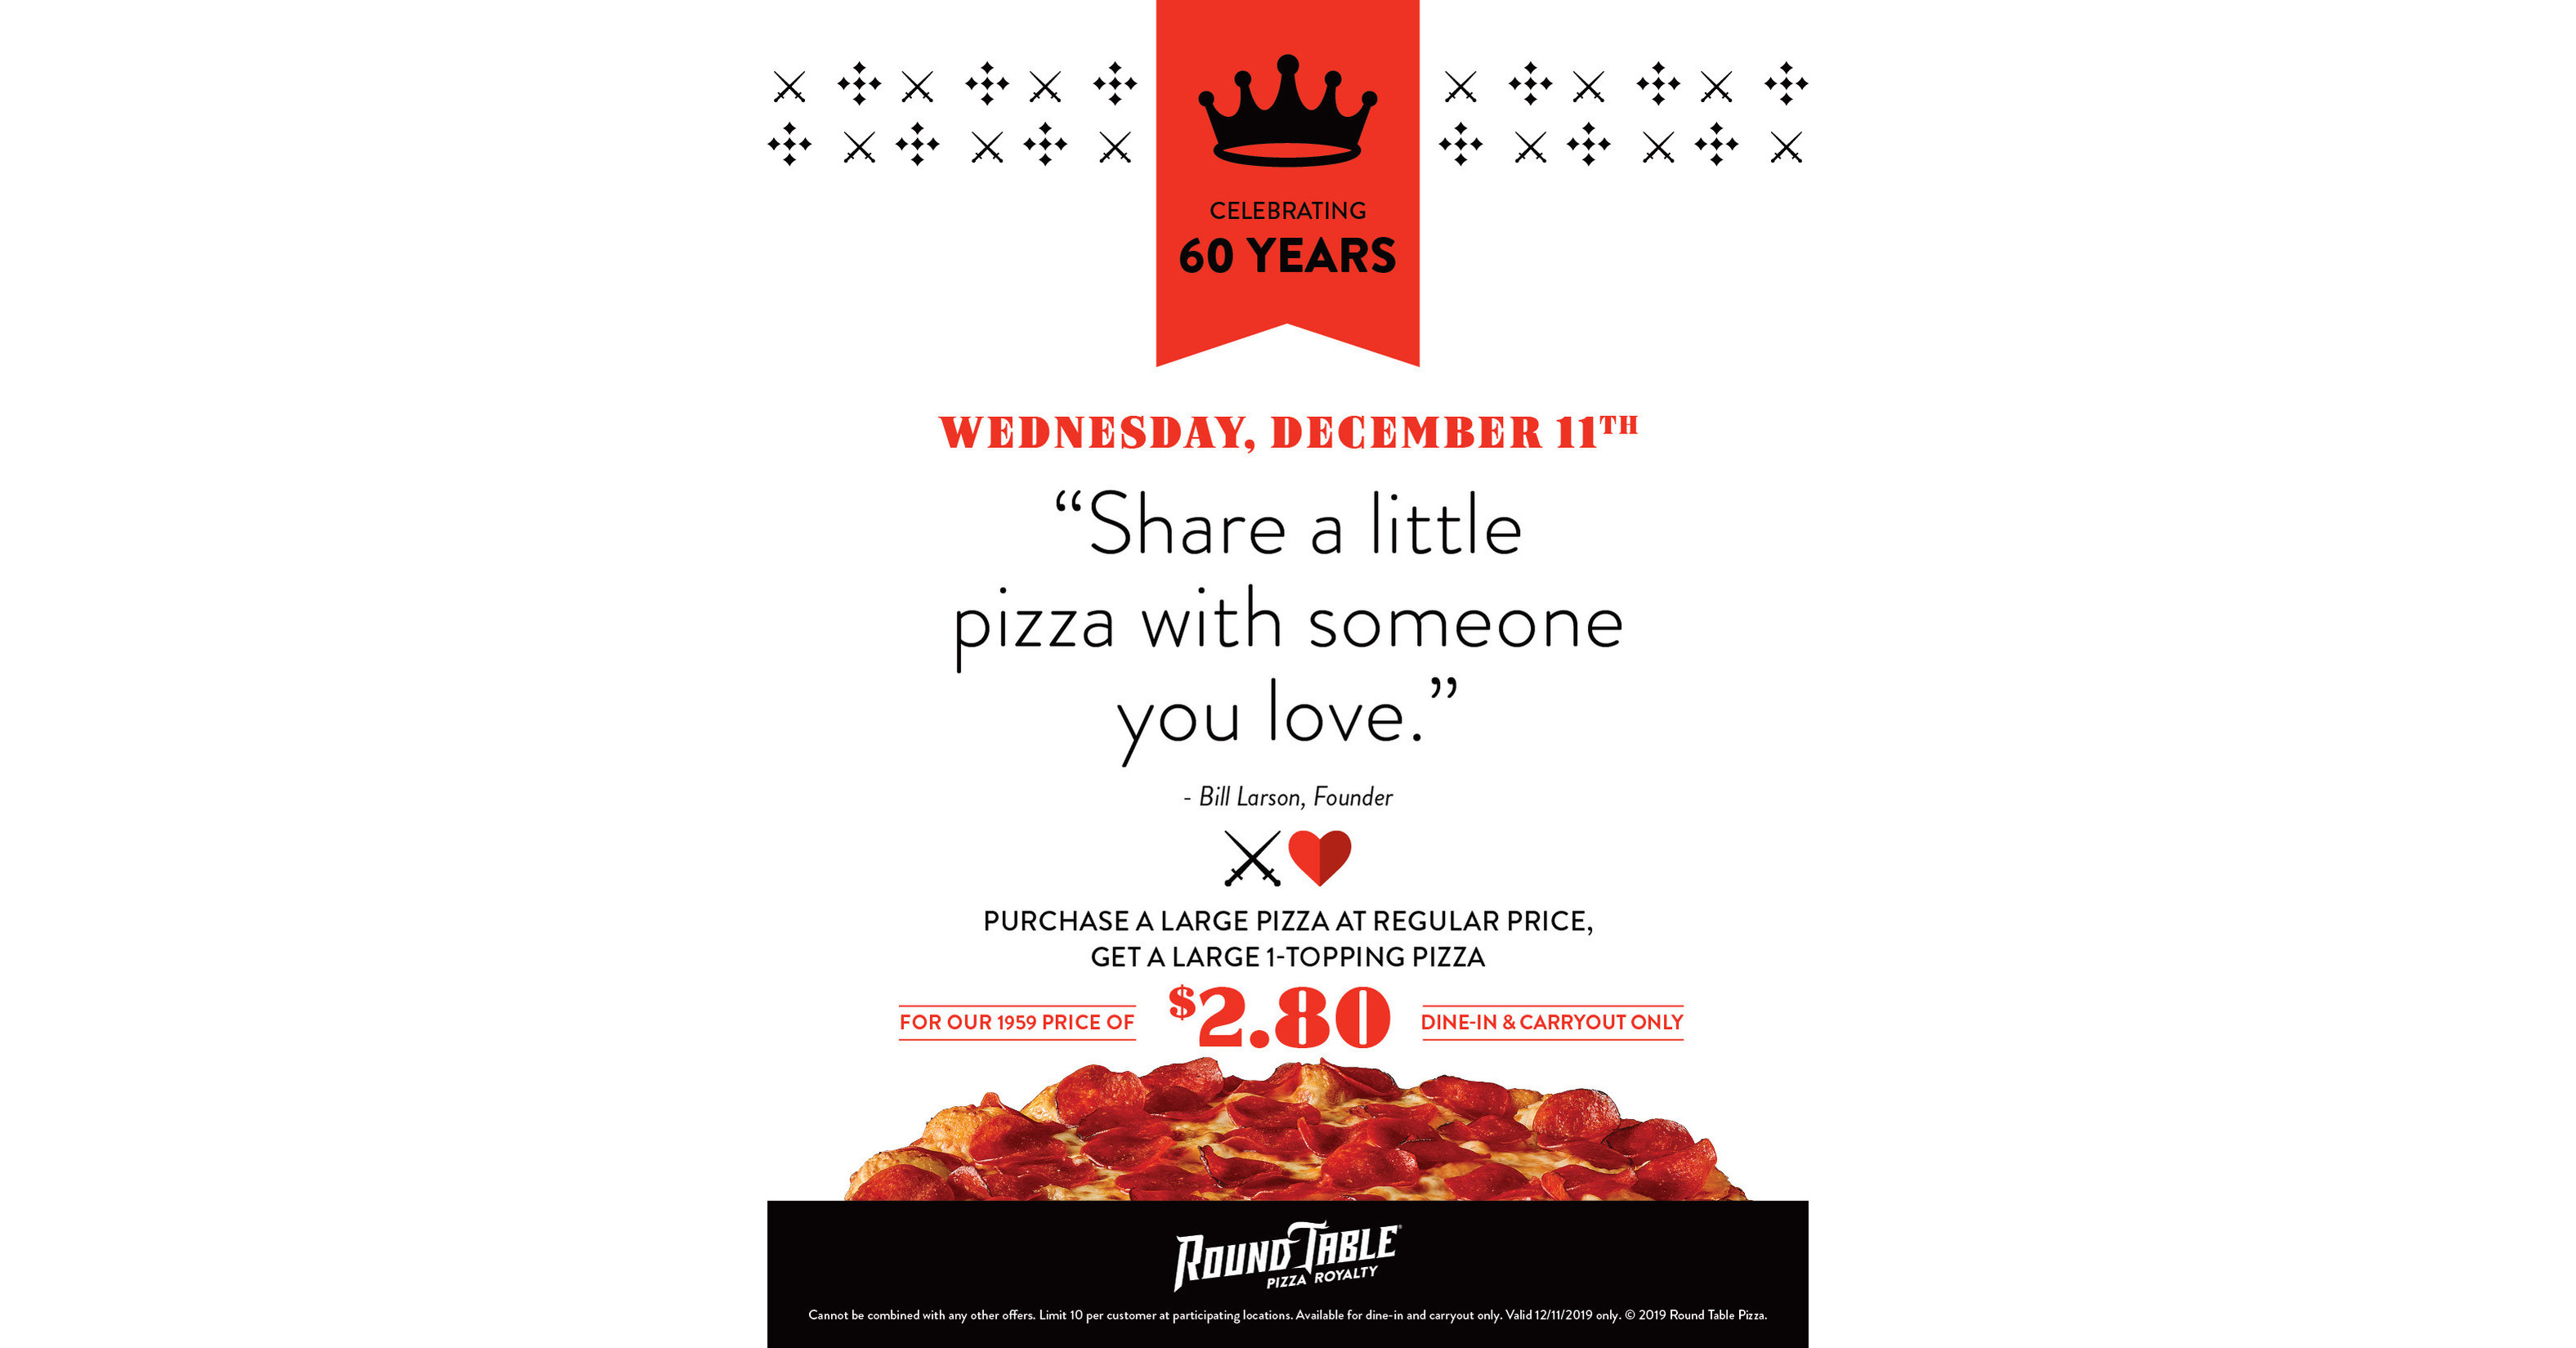 Round Table Pizza Invites Customers To Share A Little